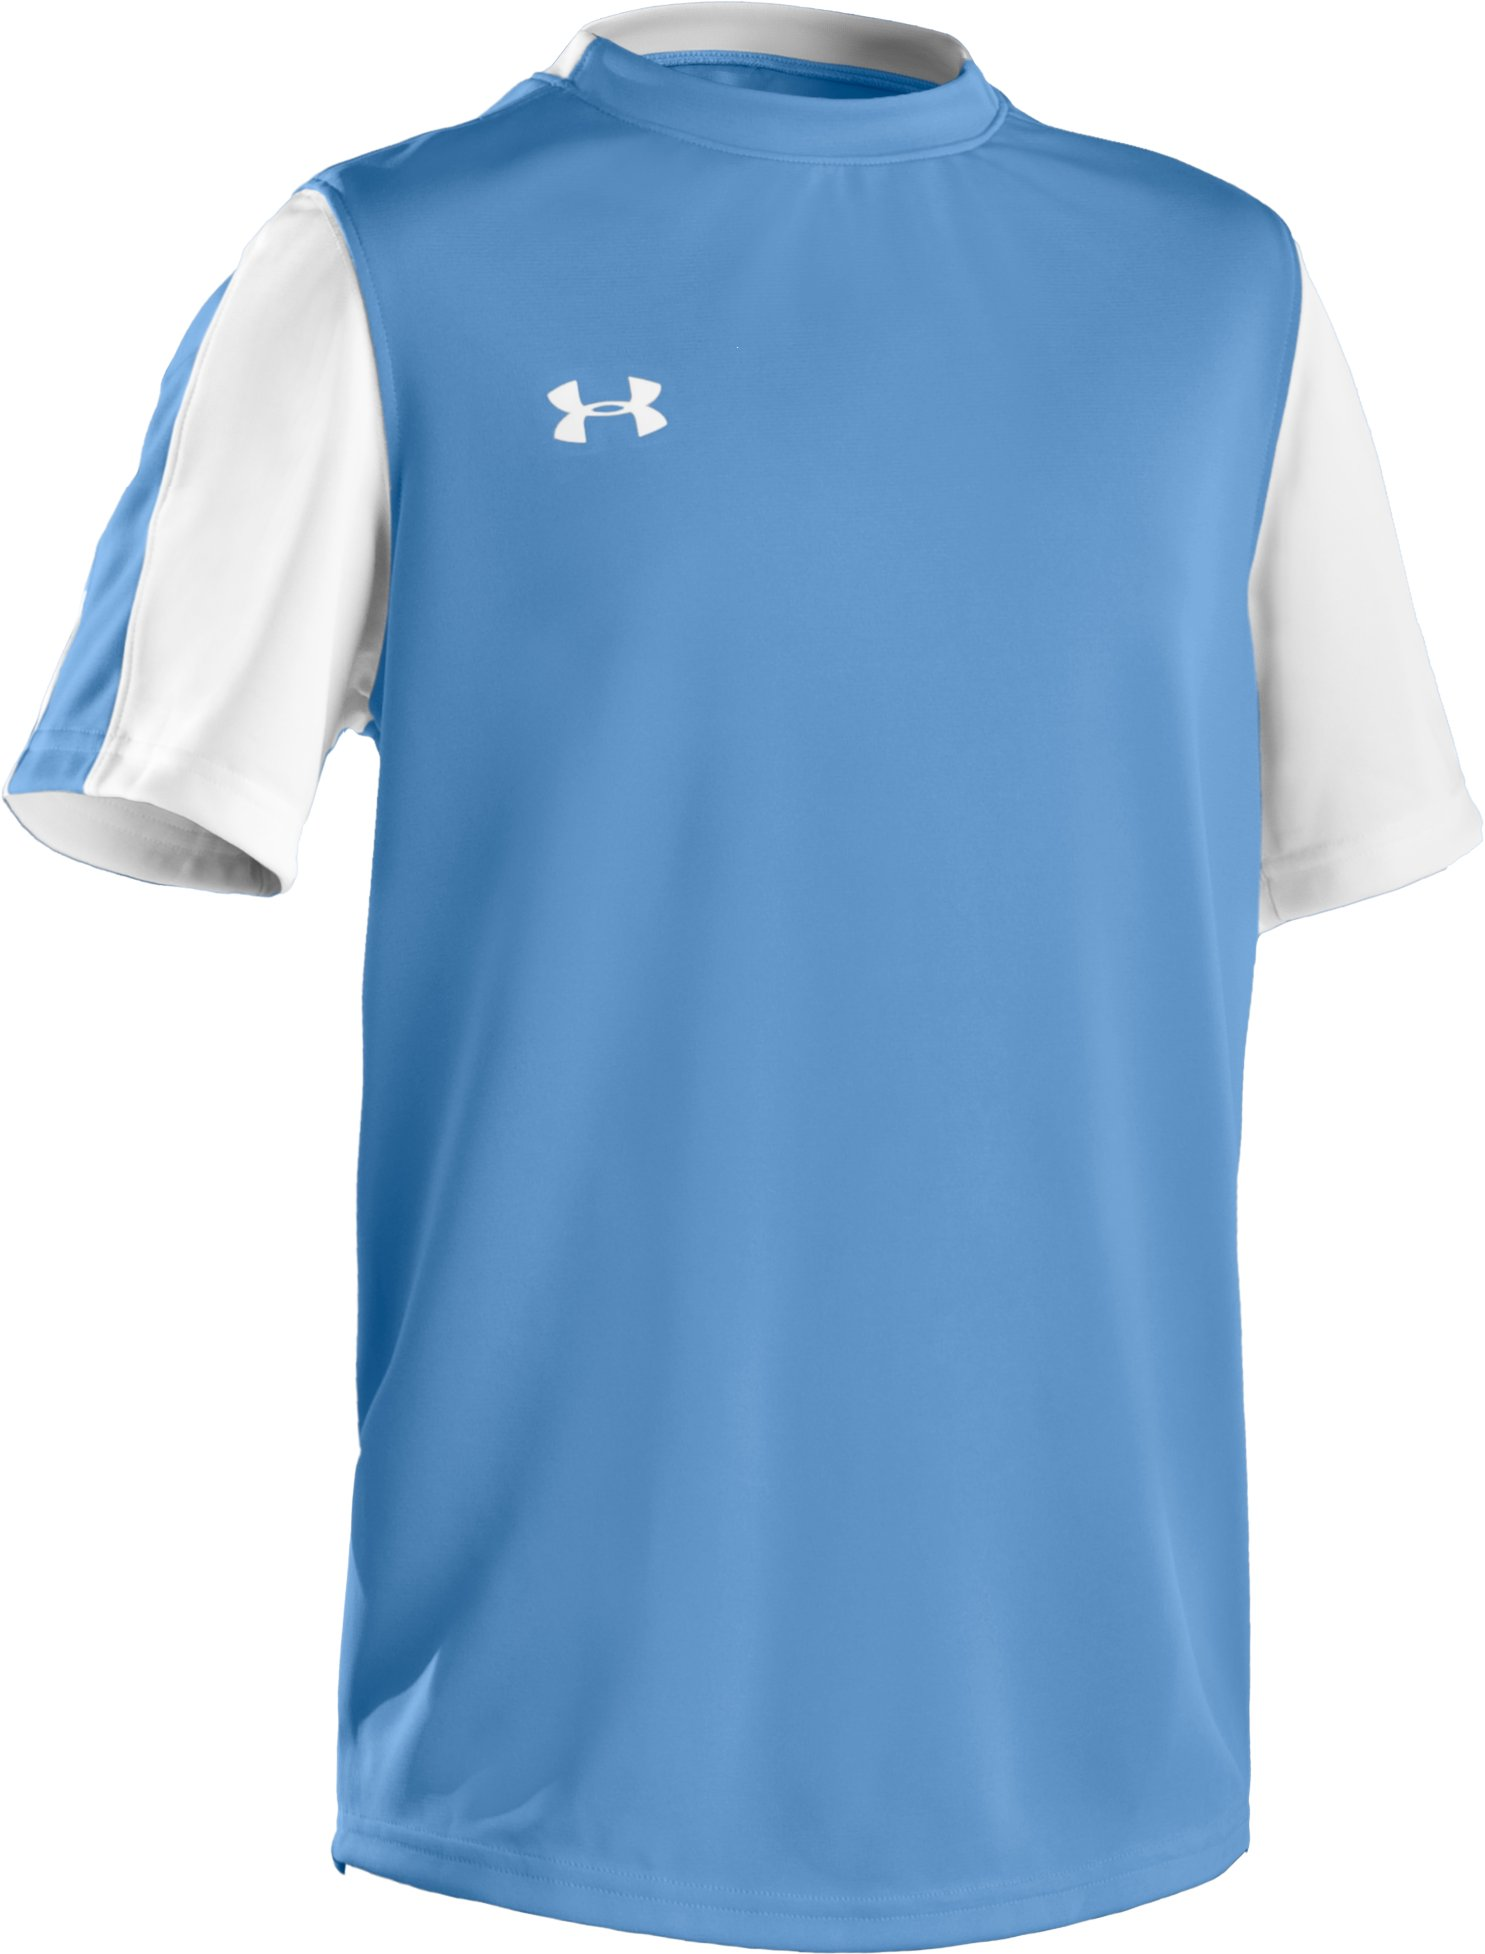 Boys' UA Classic Short Sleeve Jersey, Carolina Blue, zoomed image